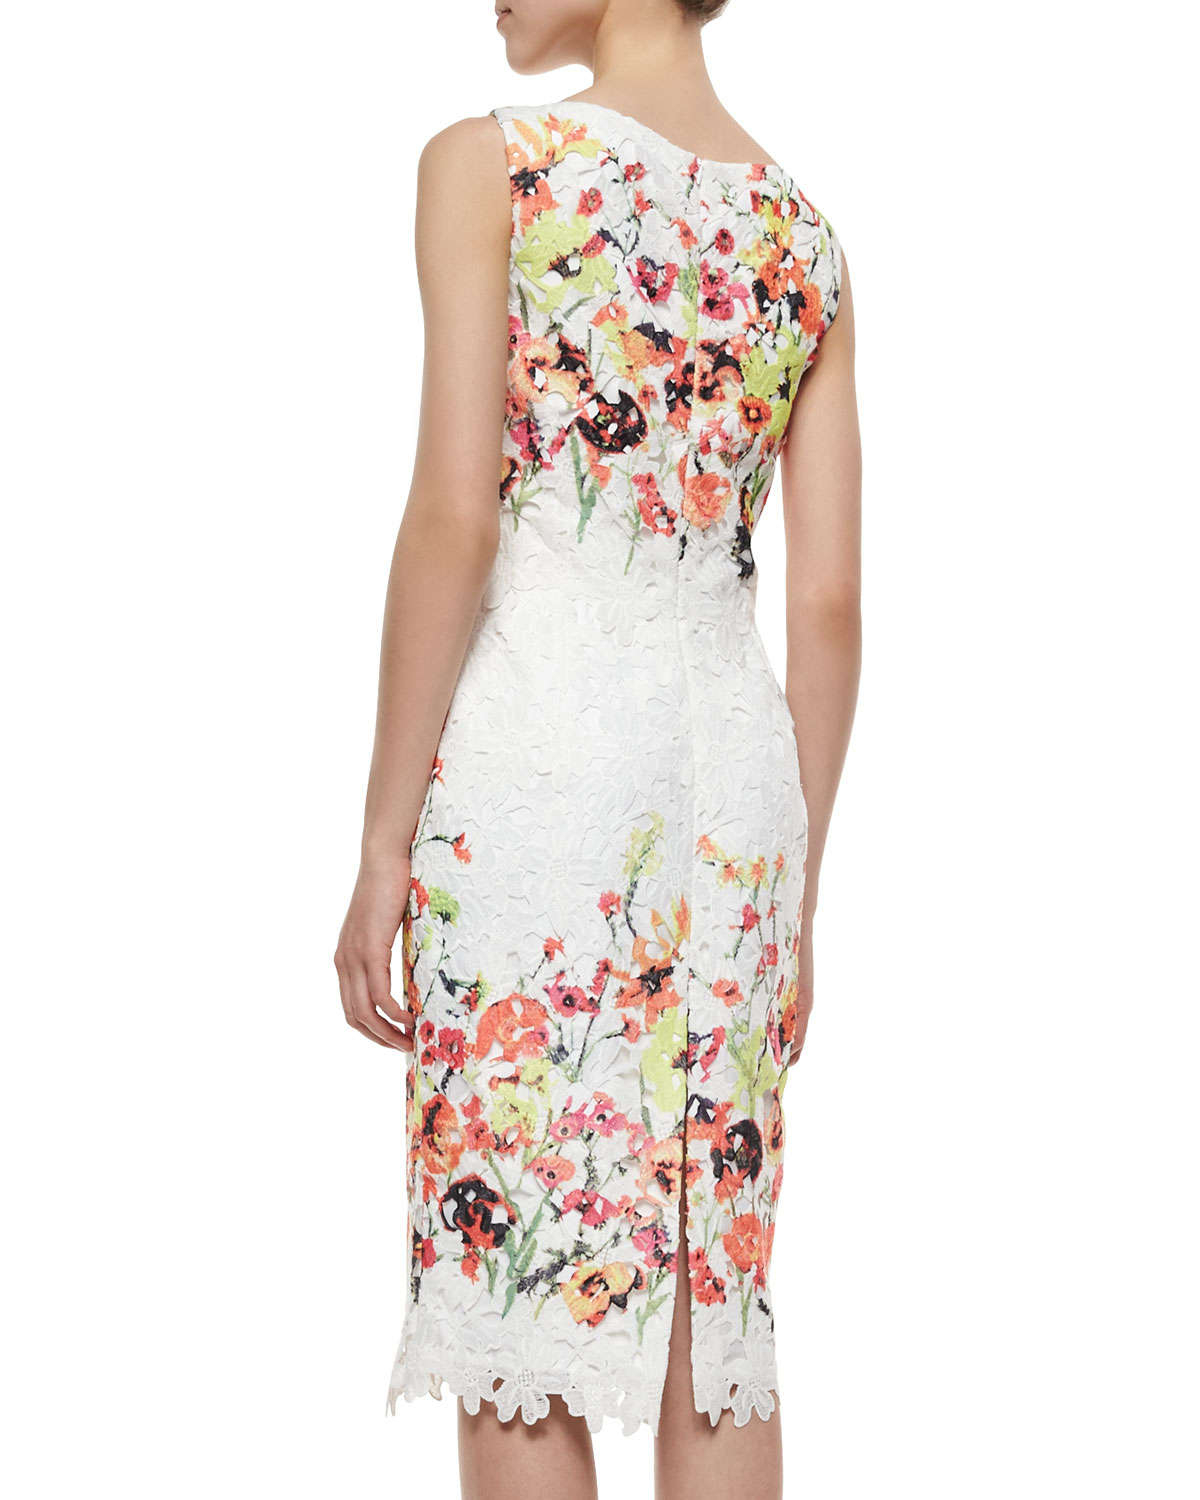 718460cd4a Badgley Mischka Sleeveless Floral-Embroidered Lace Dress - Lyst